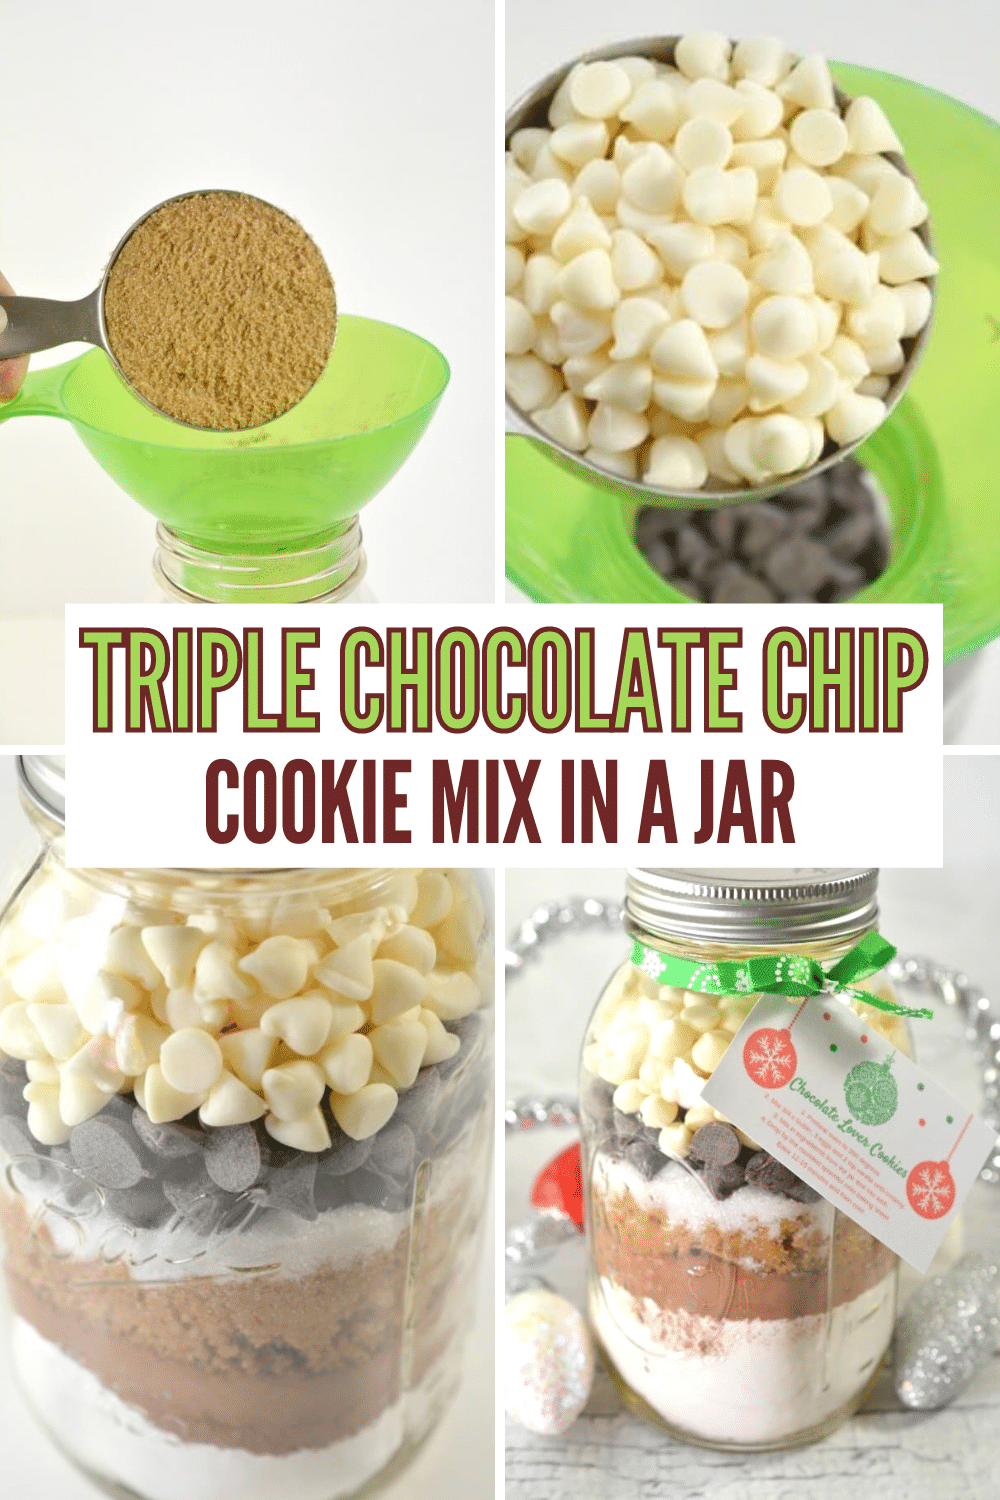 This delicious cookie mix in a jar gift is perfect for chocolate lovers! Comes with free printable tags to attach to the jar with instructions for the recipient to turn the mix into delicious triple chocolate cookies. #giftinajar #chocolate #cookies via @wondermomwannab